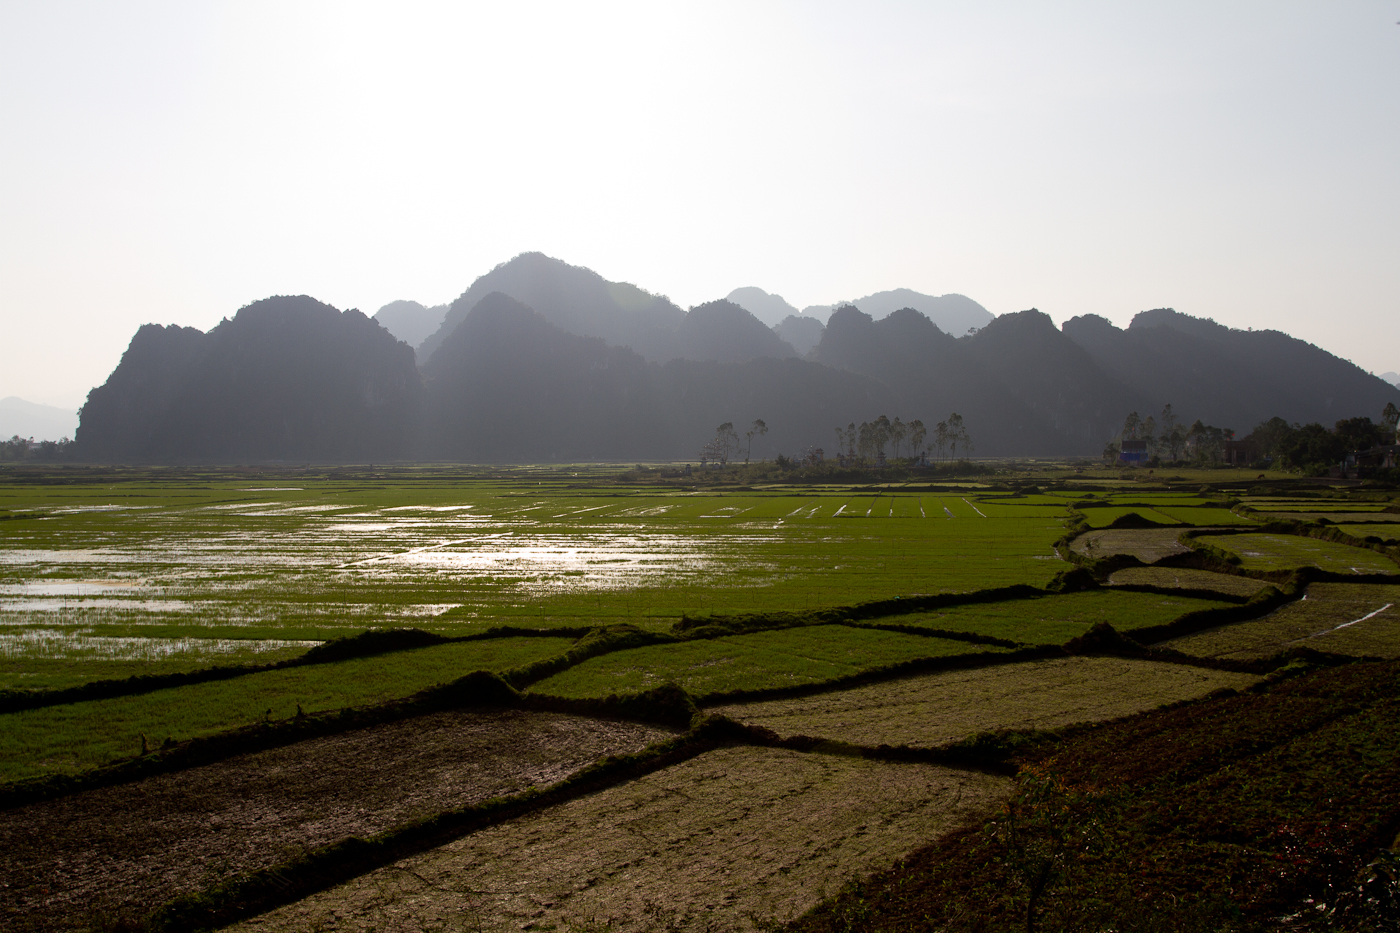 View across the rice paddies towards Phong Nha.